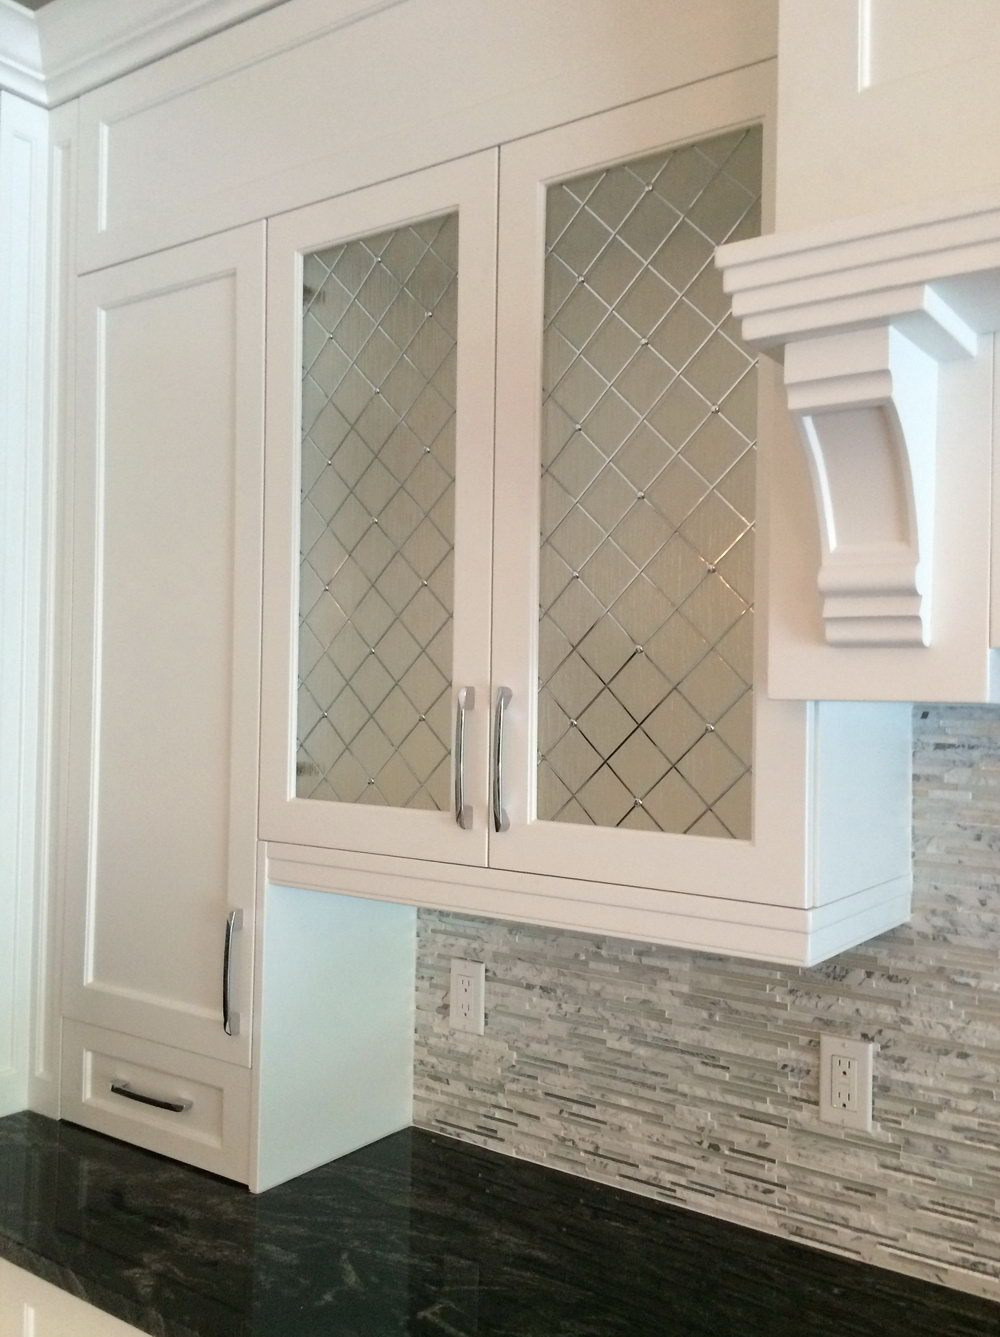 How to Put Glass In Cabinet Doors Fresh Beveled Glass Cabinet Doors Cabinet Mullion Inserts Adding